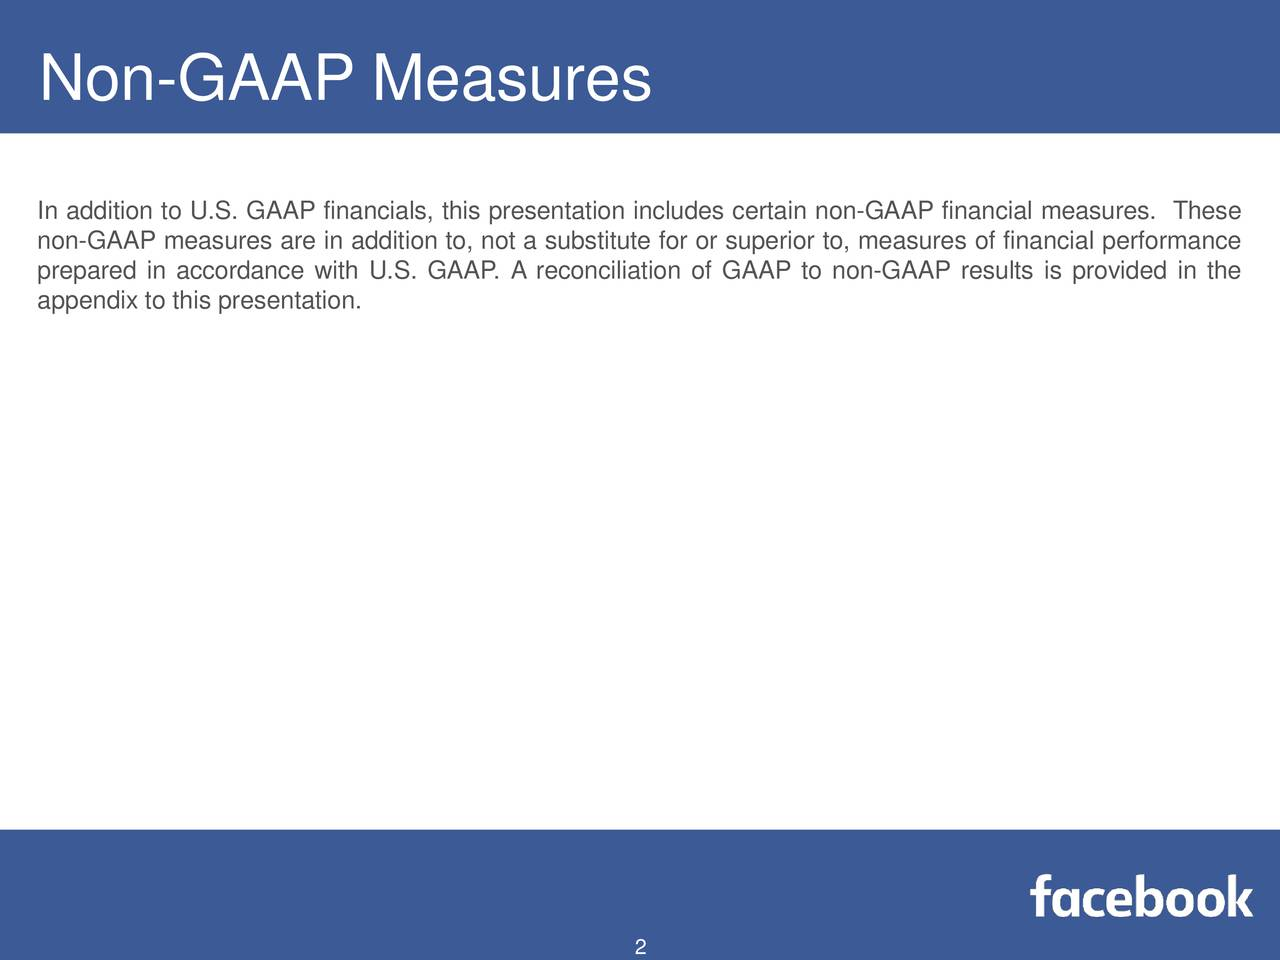 In addition to U.S. GAAP financials, this presentation includes certain non-GAAP financial measures. These non-GAAP measures are in addition to, not a substitute for or superior to, measures of financial performance prepared in accordance with U.S. GAAP. A reconciliation of GAAP to non-GAAP results is provided in the appendix to this presentation.